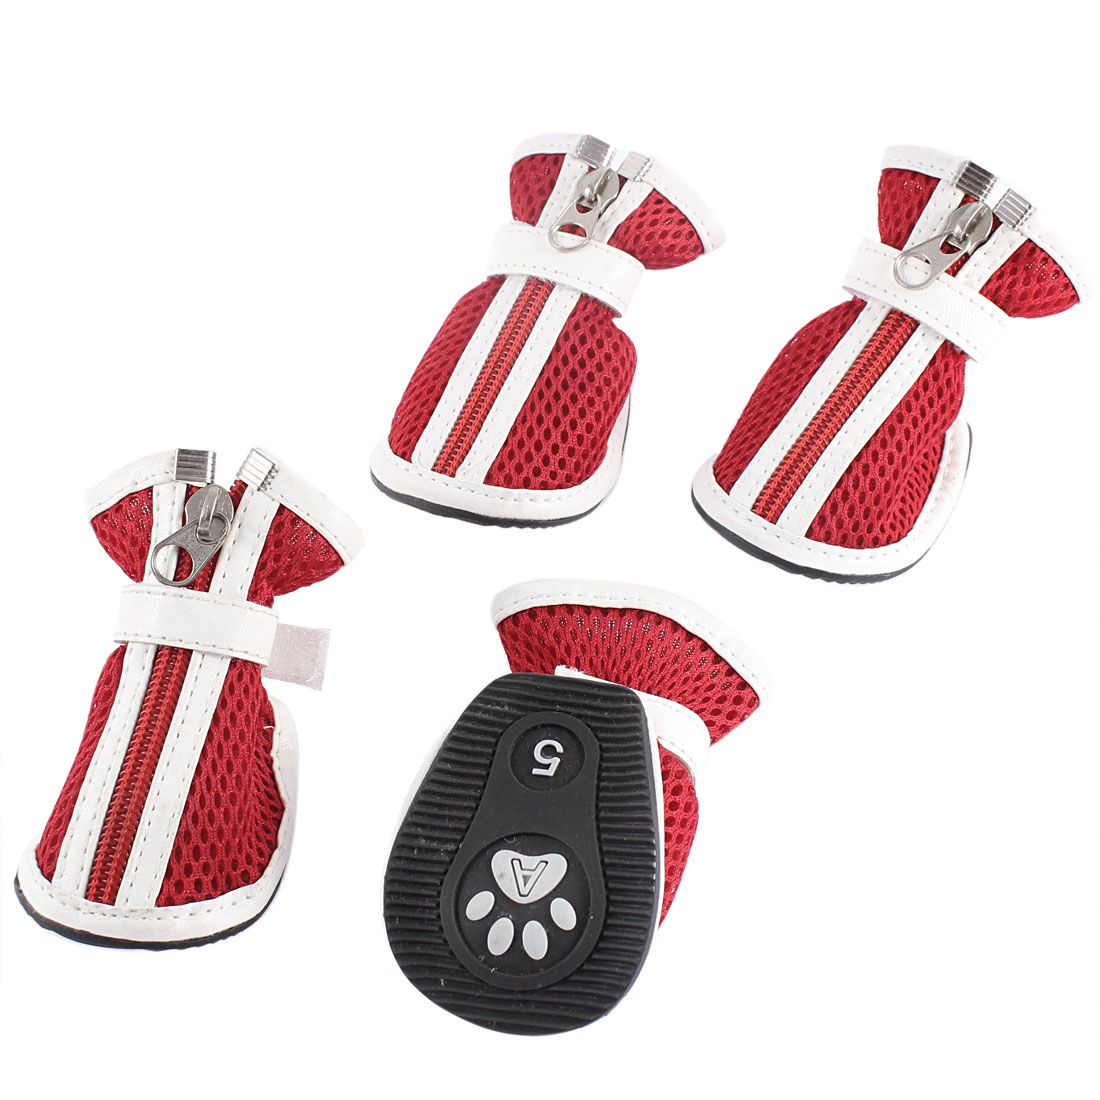 2 Pairs Red Hook Loop Closure Mesh Design Pet Dog Puppy Walking Shoes S